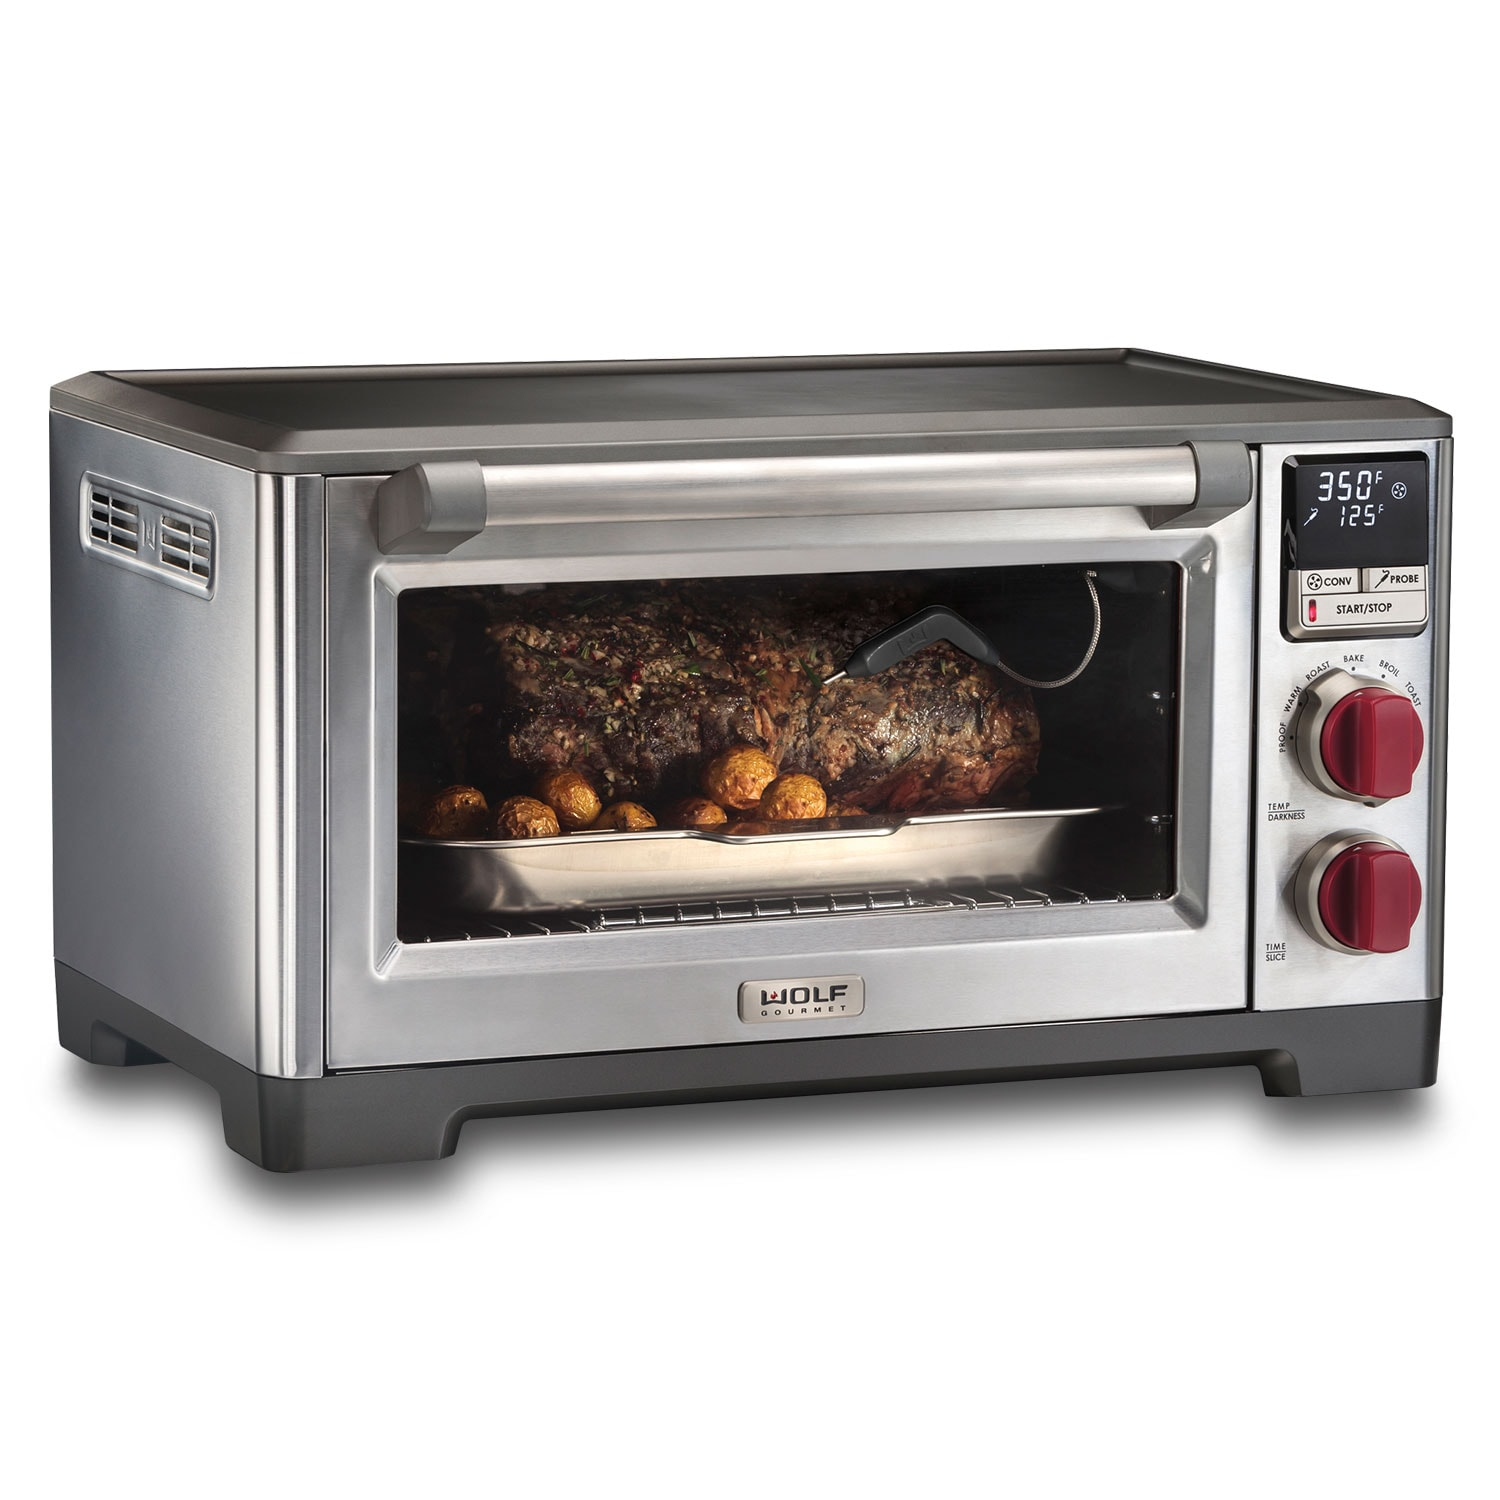 wolf countertop oven review subzerowolf quality and look of wolf oven in countertop form intuitive design highperformance electronics deliver light flaky pastries caramelized root countertop oven gourmet appliances